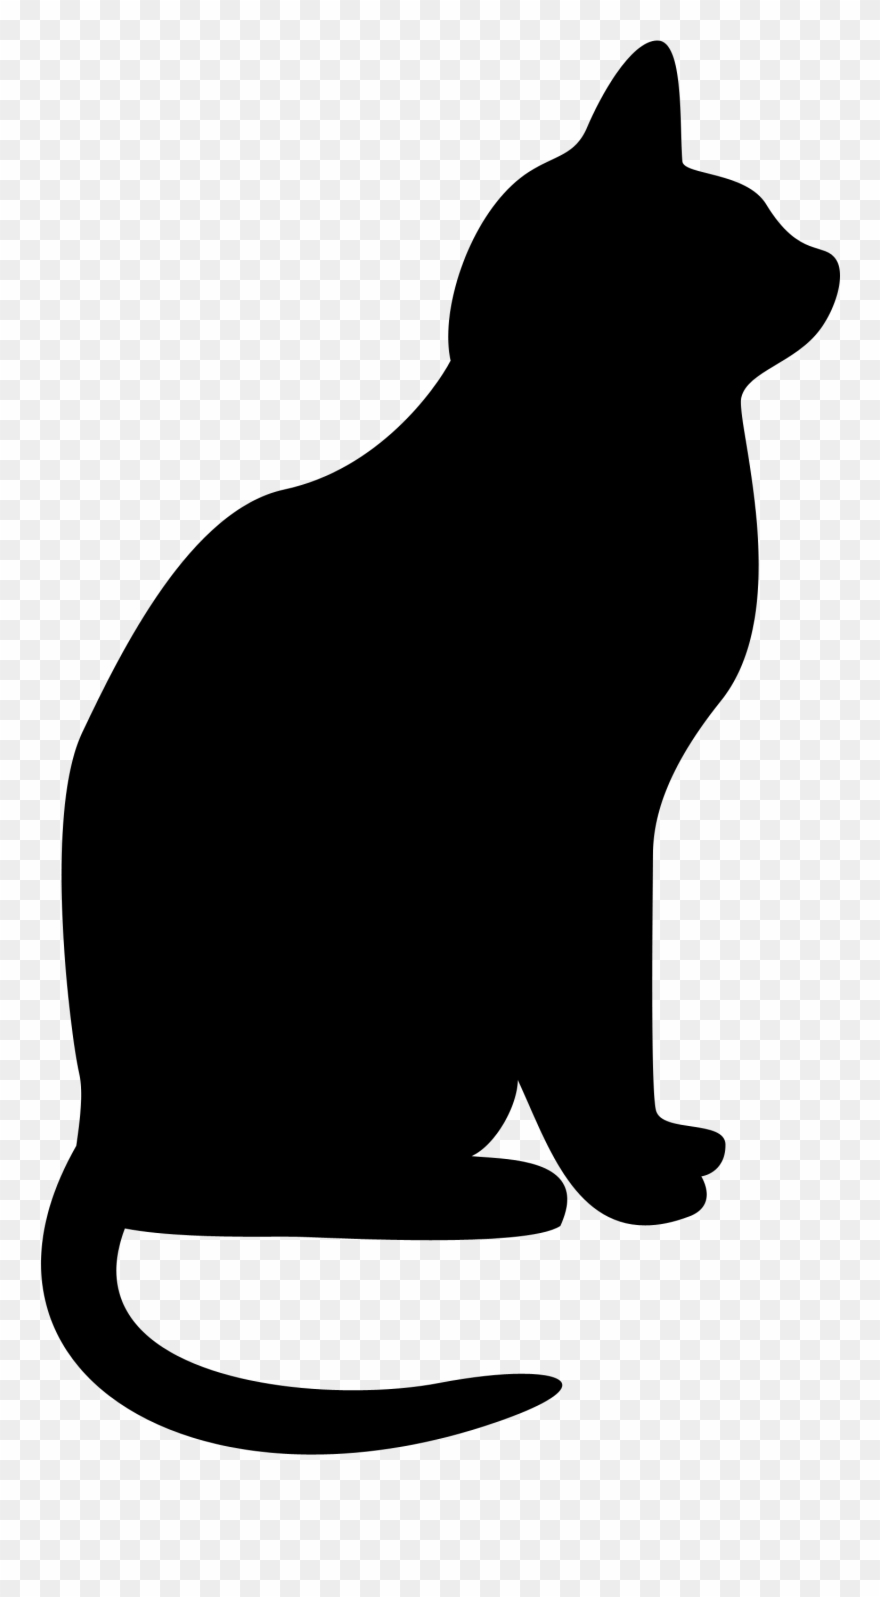 Cats clipart silhouette. Clip art transparent library